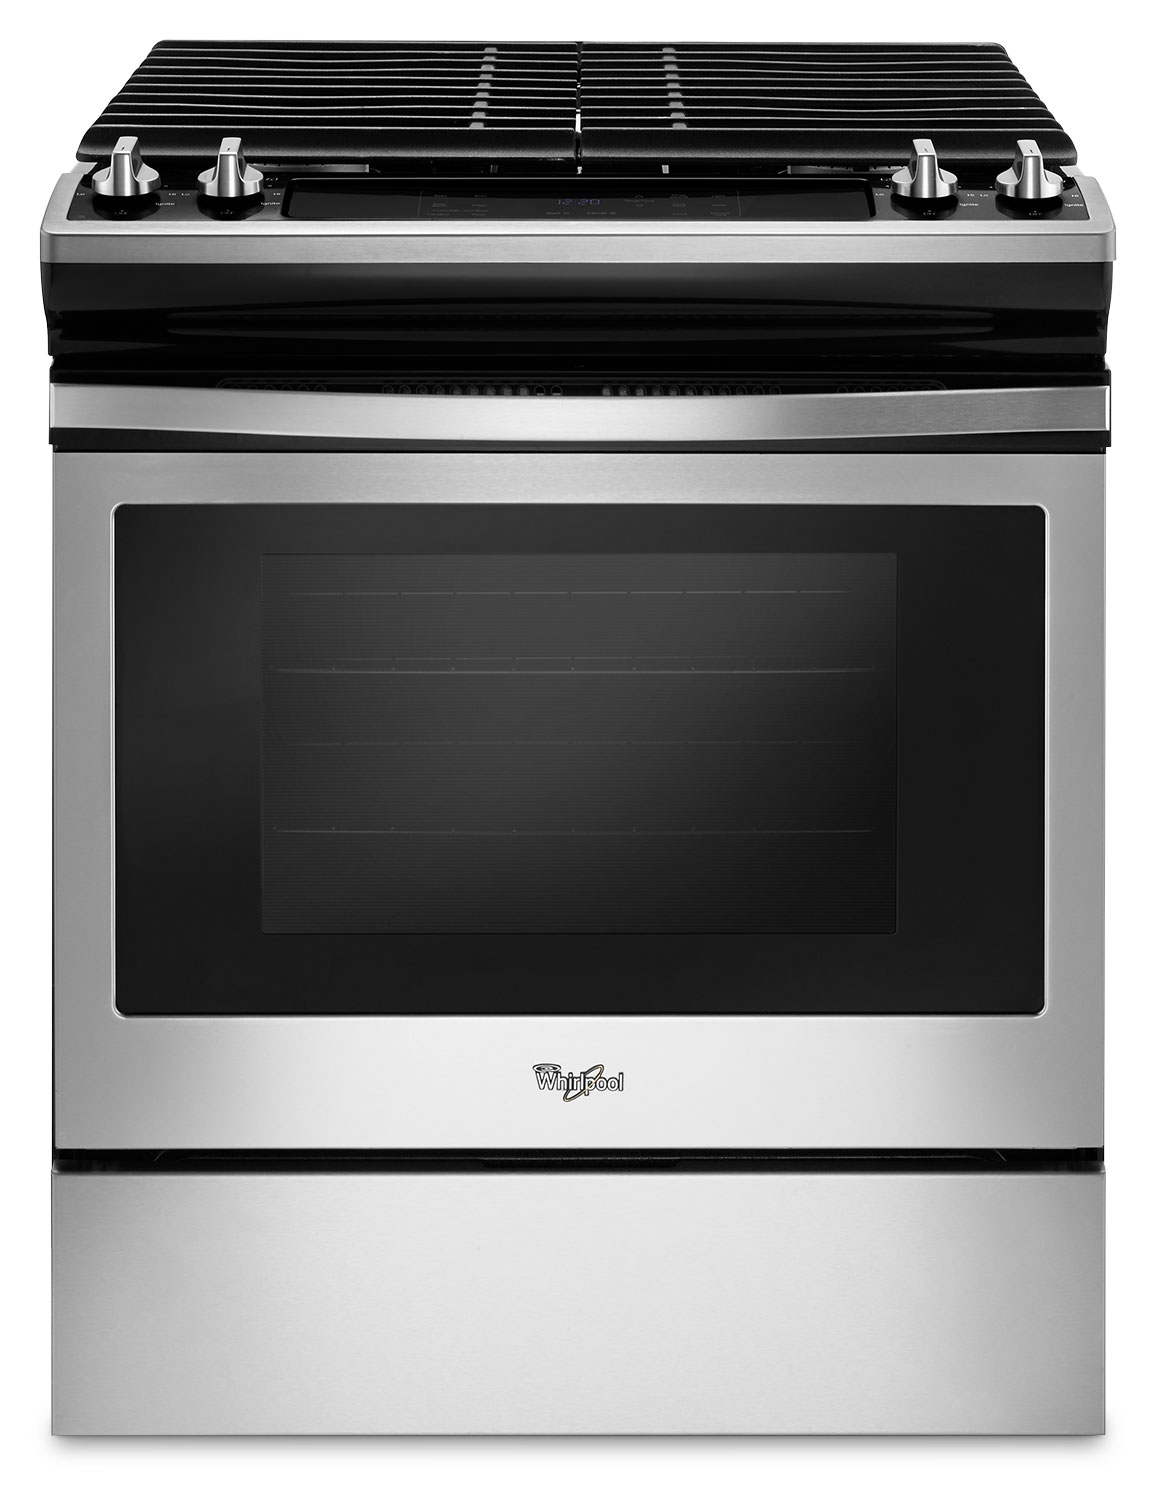 Whirlpool® 5.0 Cu. Ft. Front Control Gas Range with Cast-Iron Grates